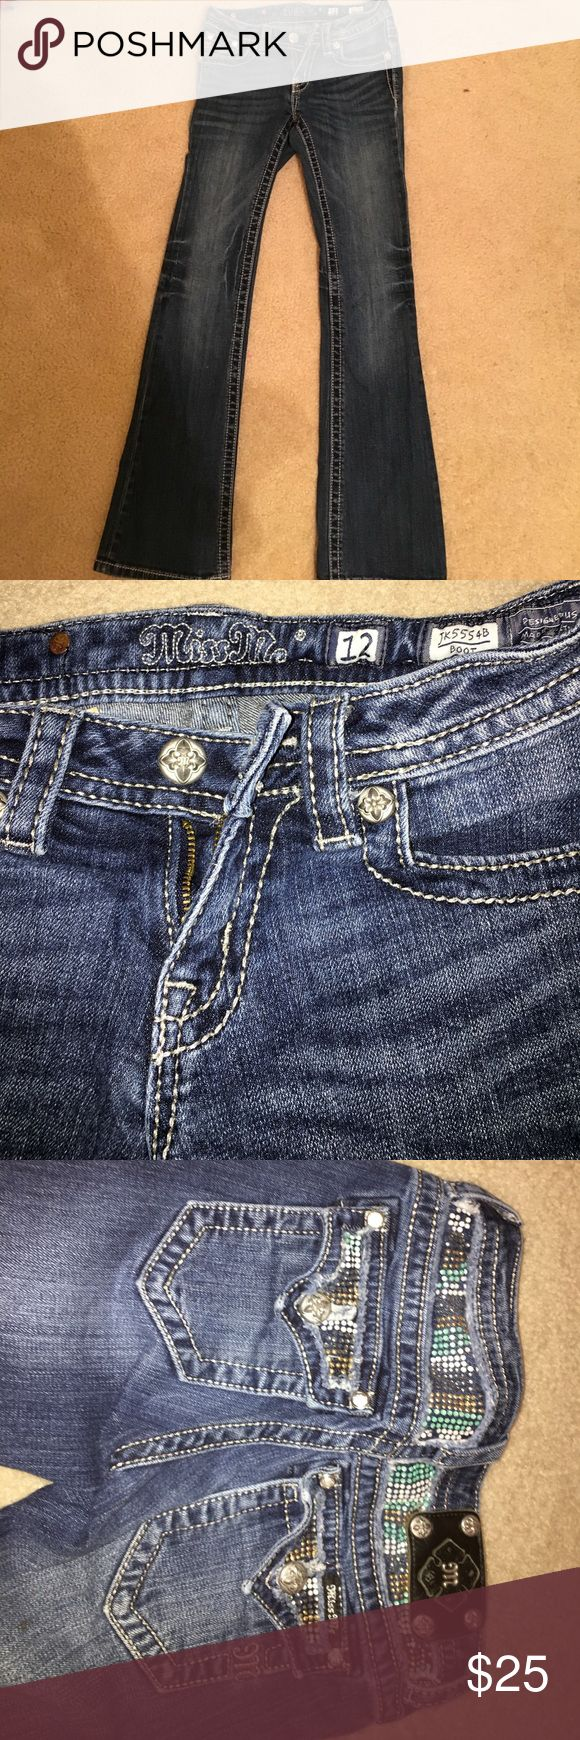 girls miss me jeans good condition, only a few jewels missing but not noticeable when on. super cute stretchy material Miss Me Bottoms Jeans